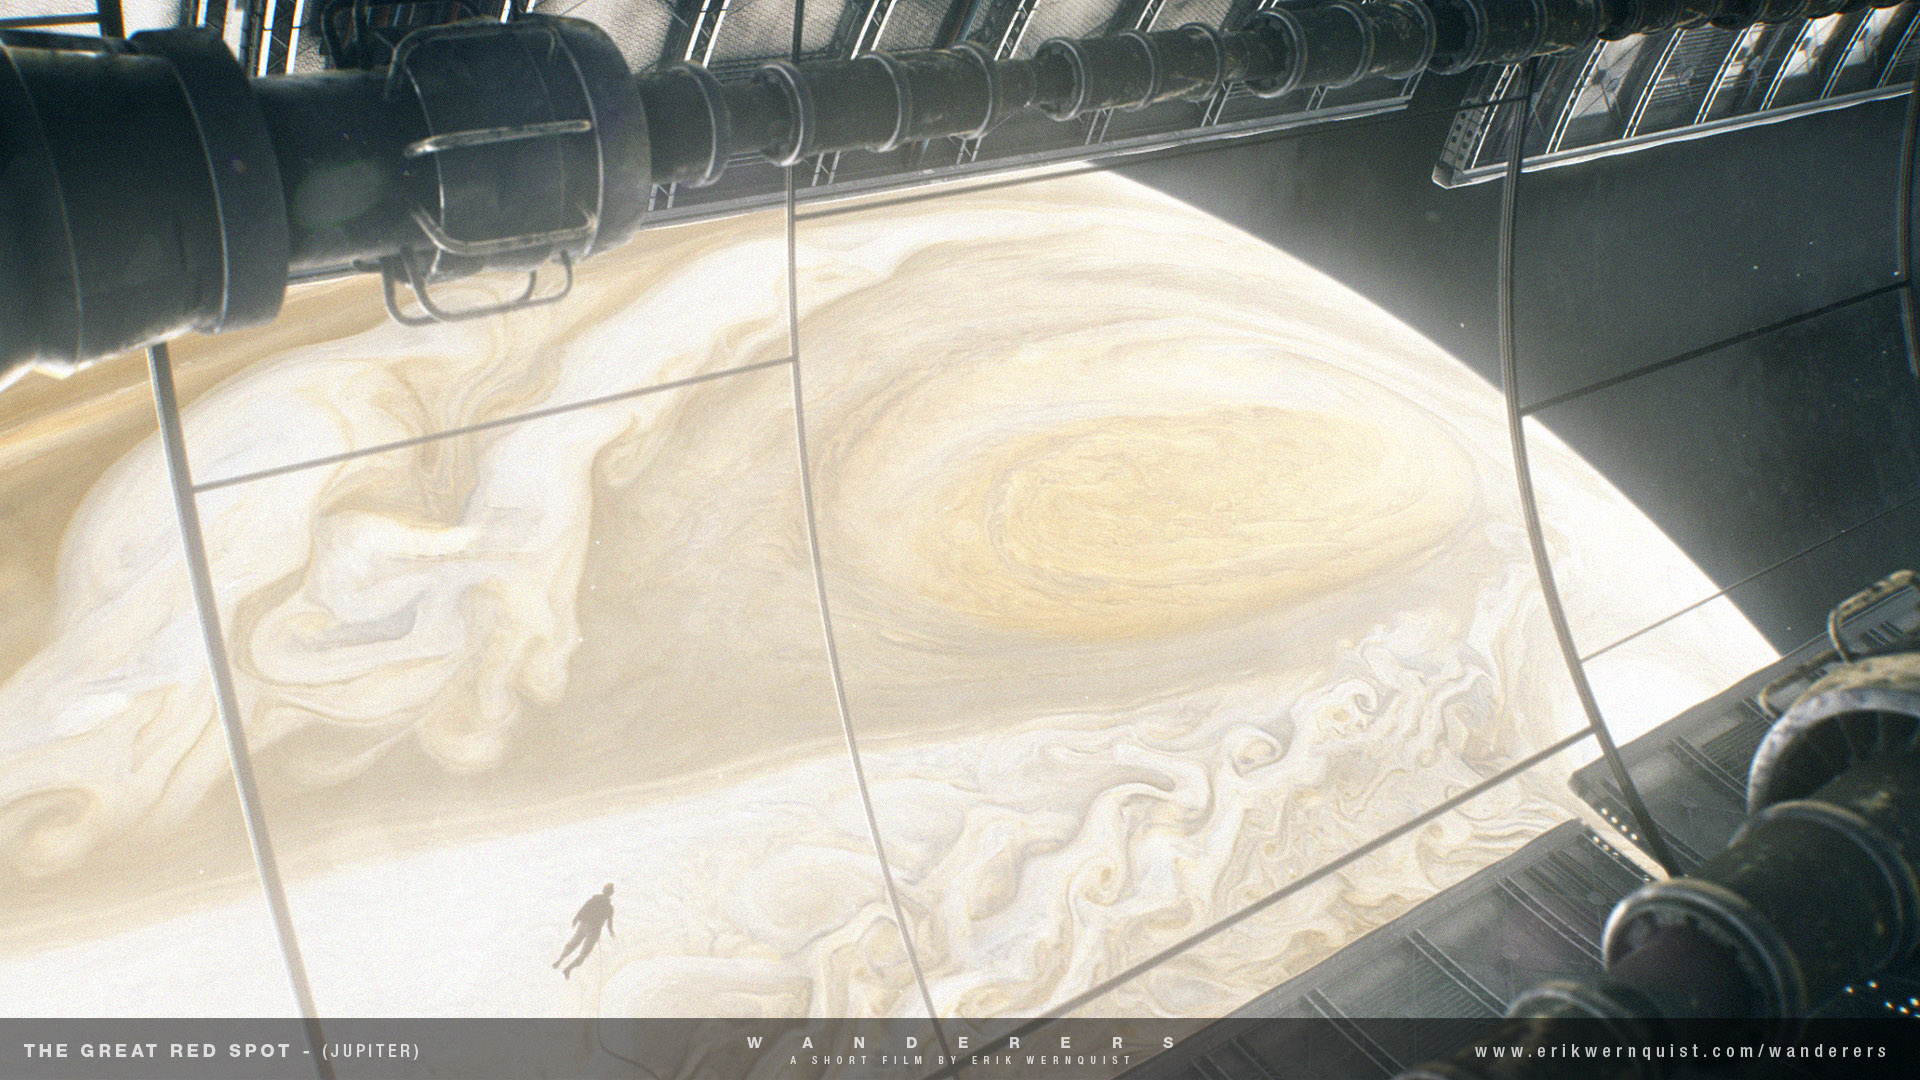 WANDERERS_the_great_red_spot_02.jpg